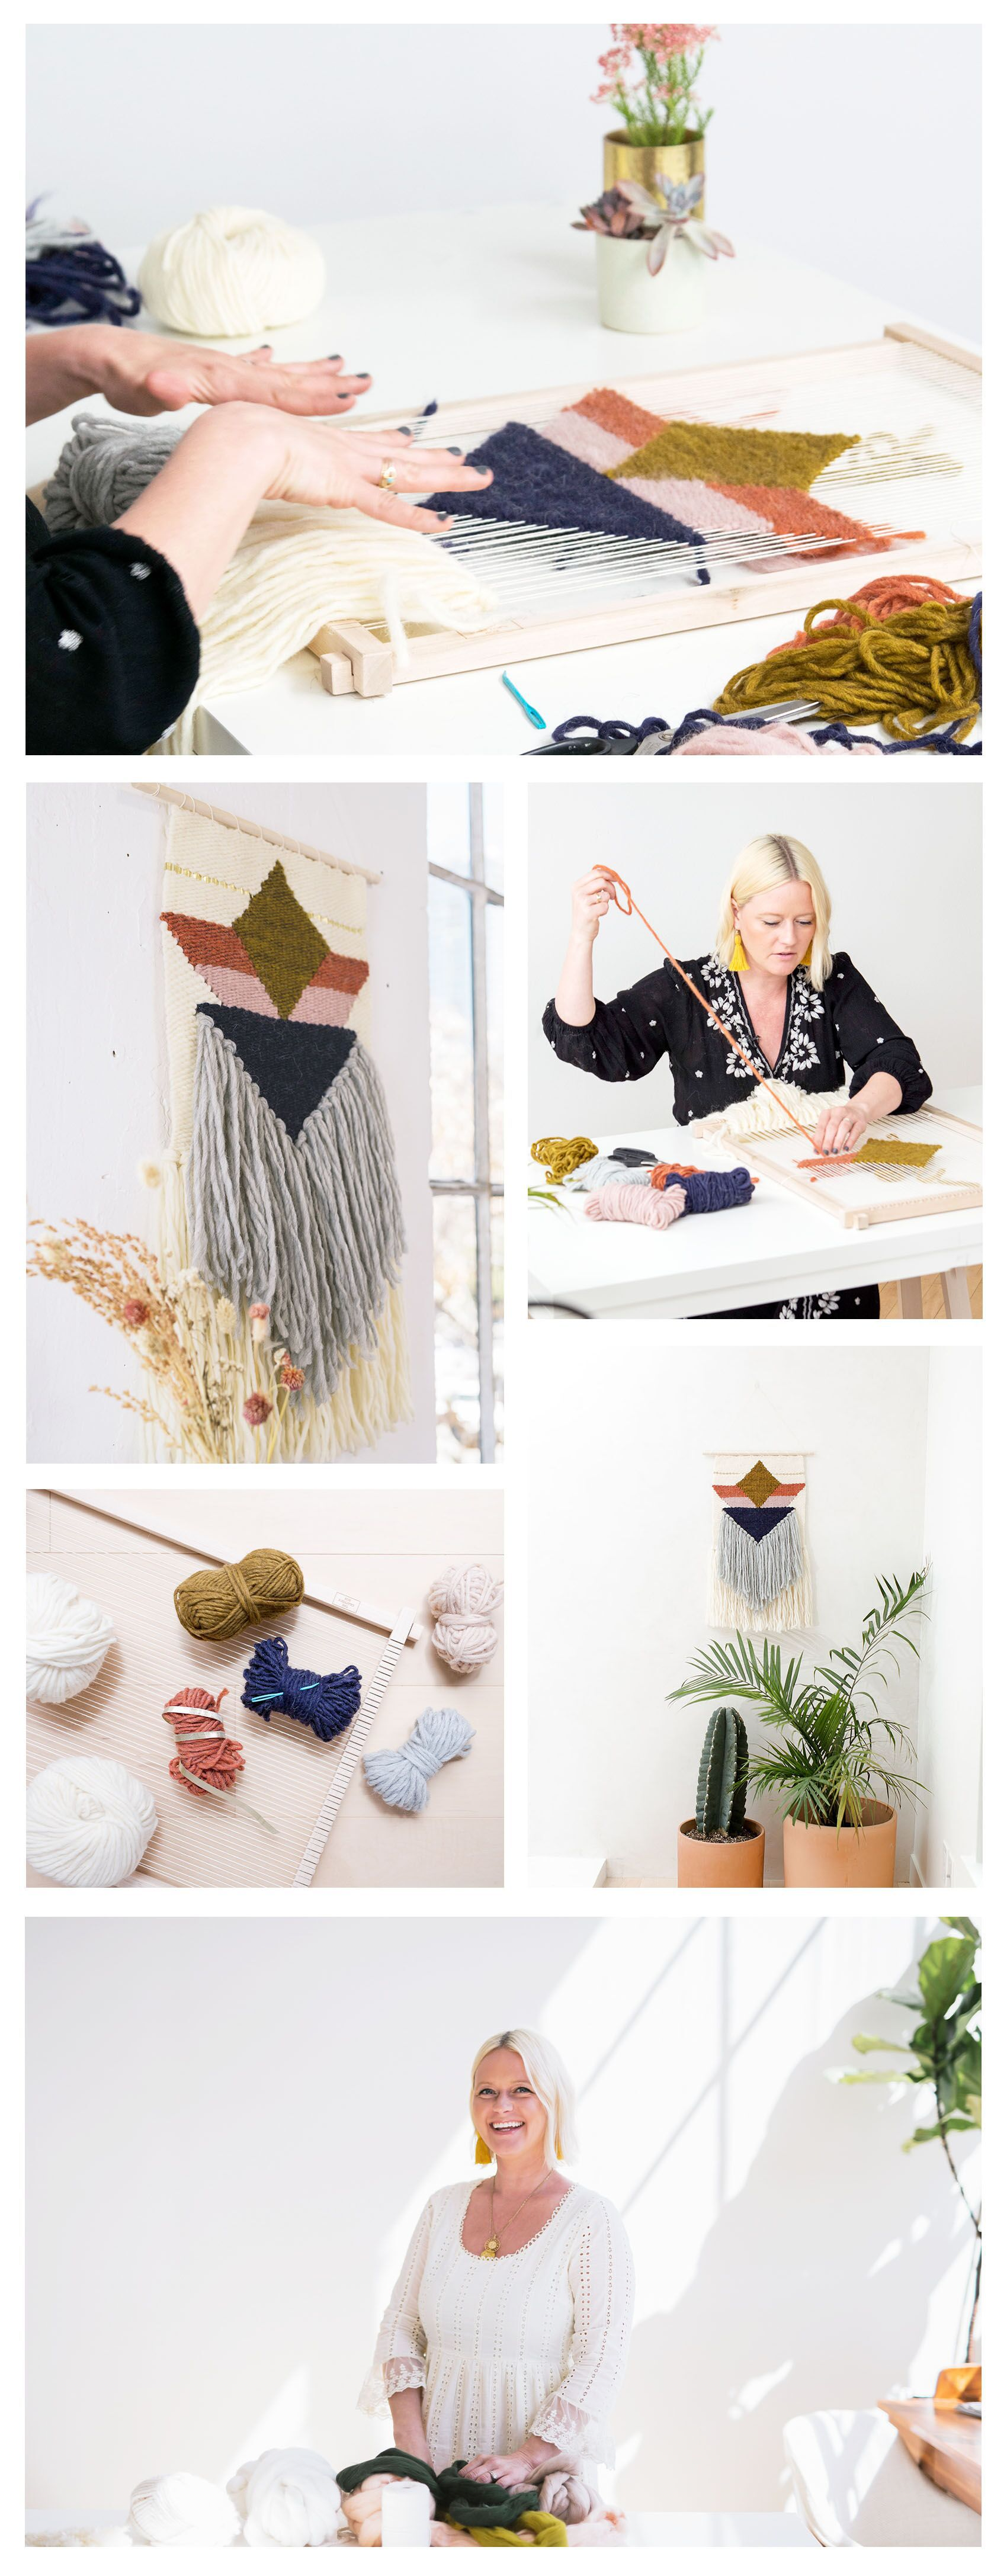 Weaving with Geometric Shapes | The Crafter's Box